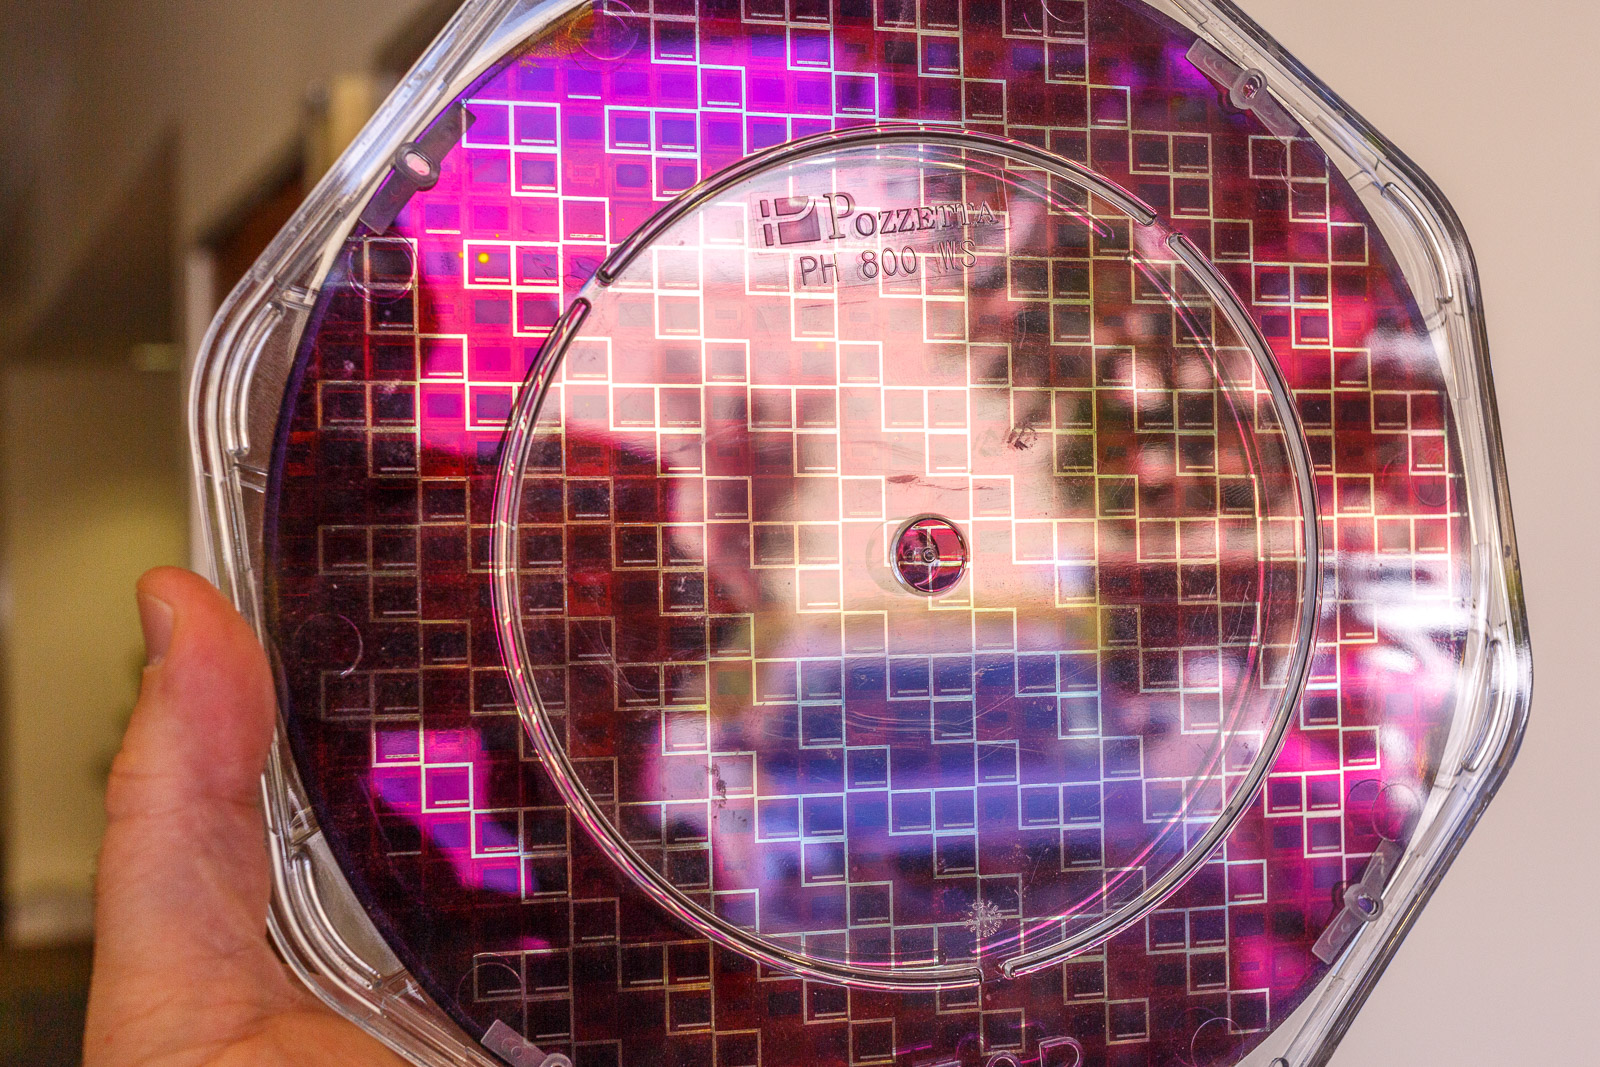 A circular wafer of InVisage image sensor chips reflects light -- but not as much, since the dots absorb light better than conventional silicon-based microchip sensors.